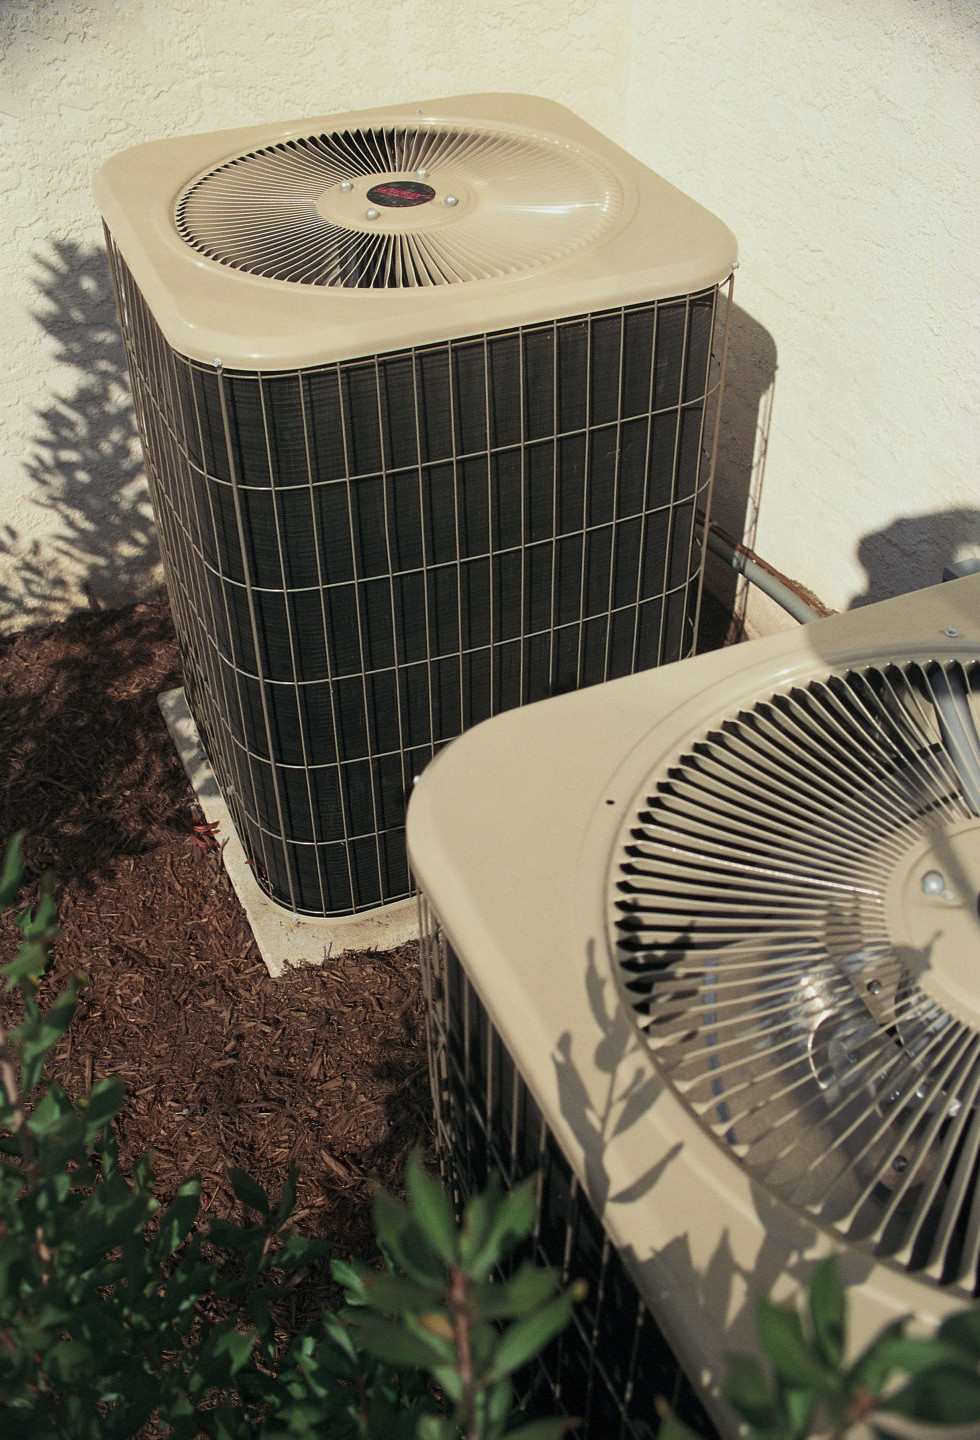 6. SKIMPING ON AN AC SYSTEM